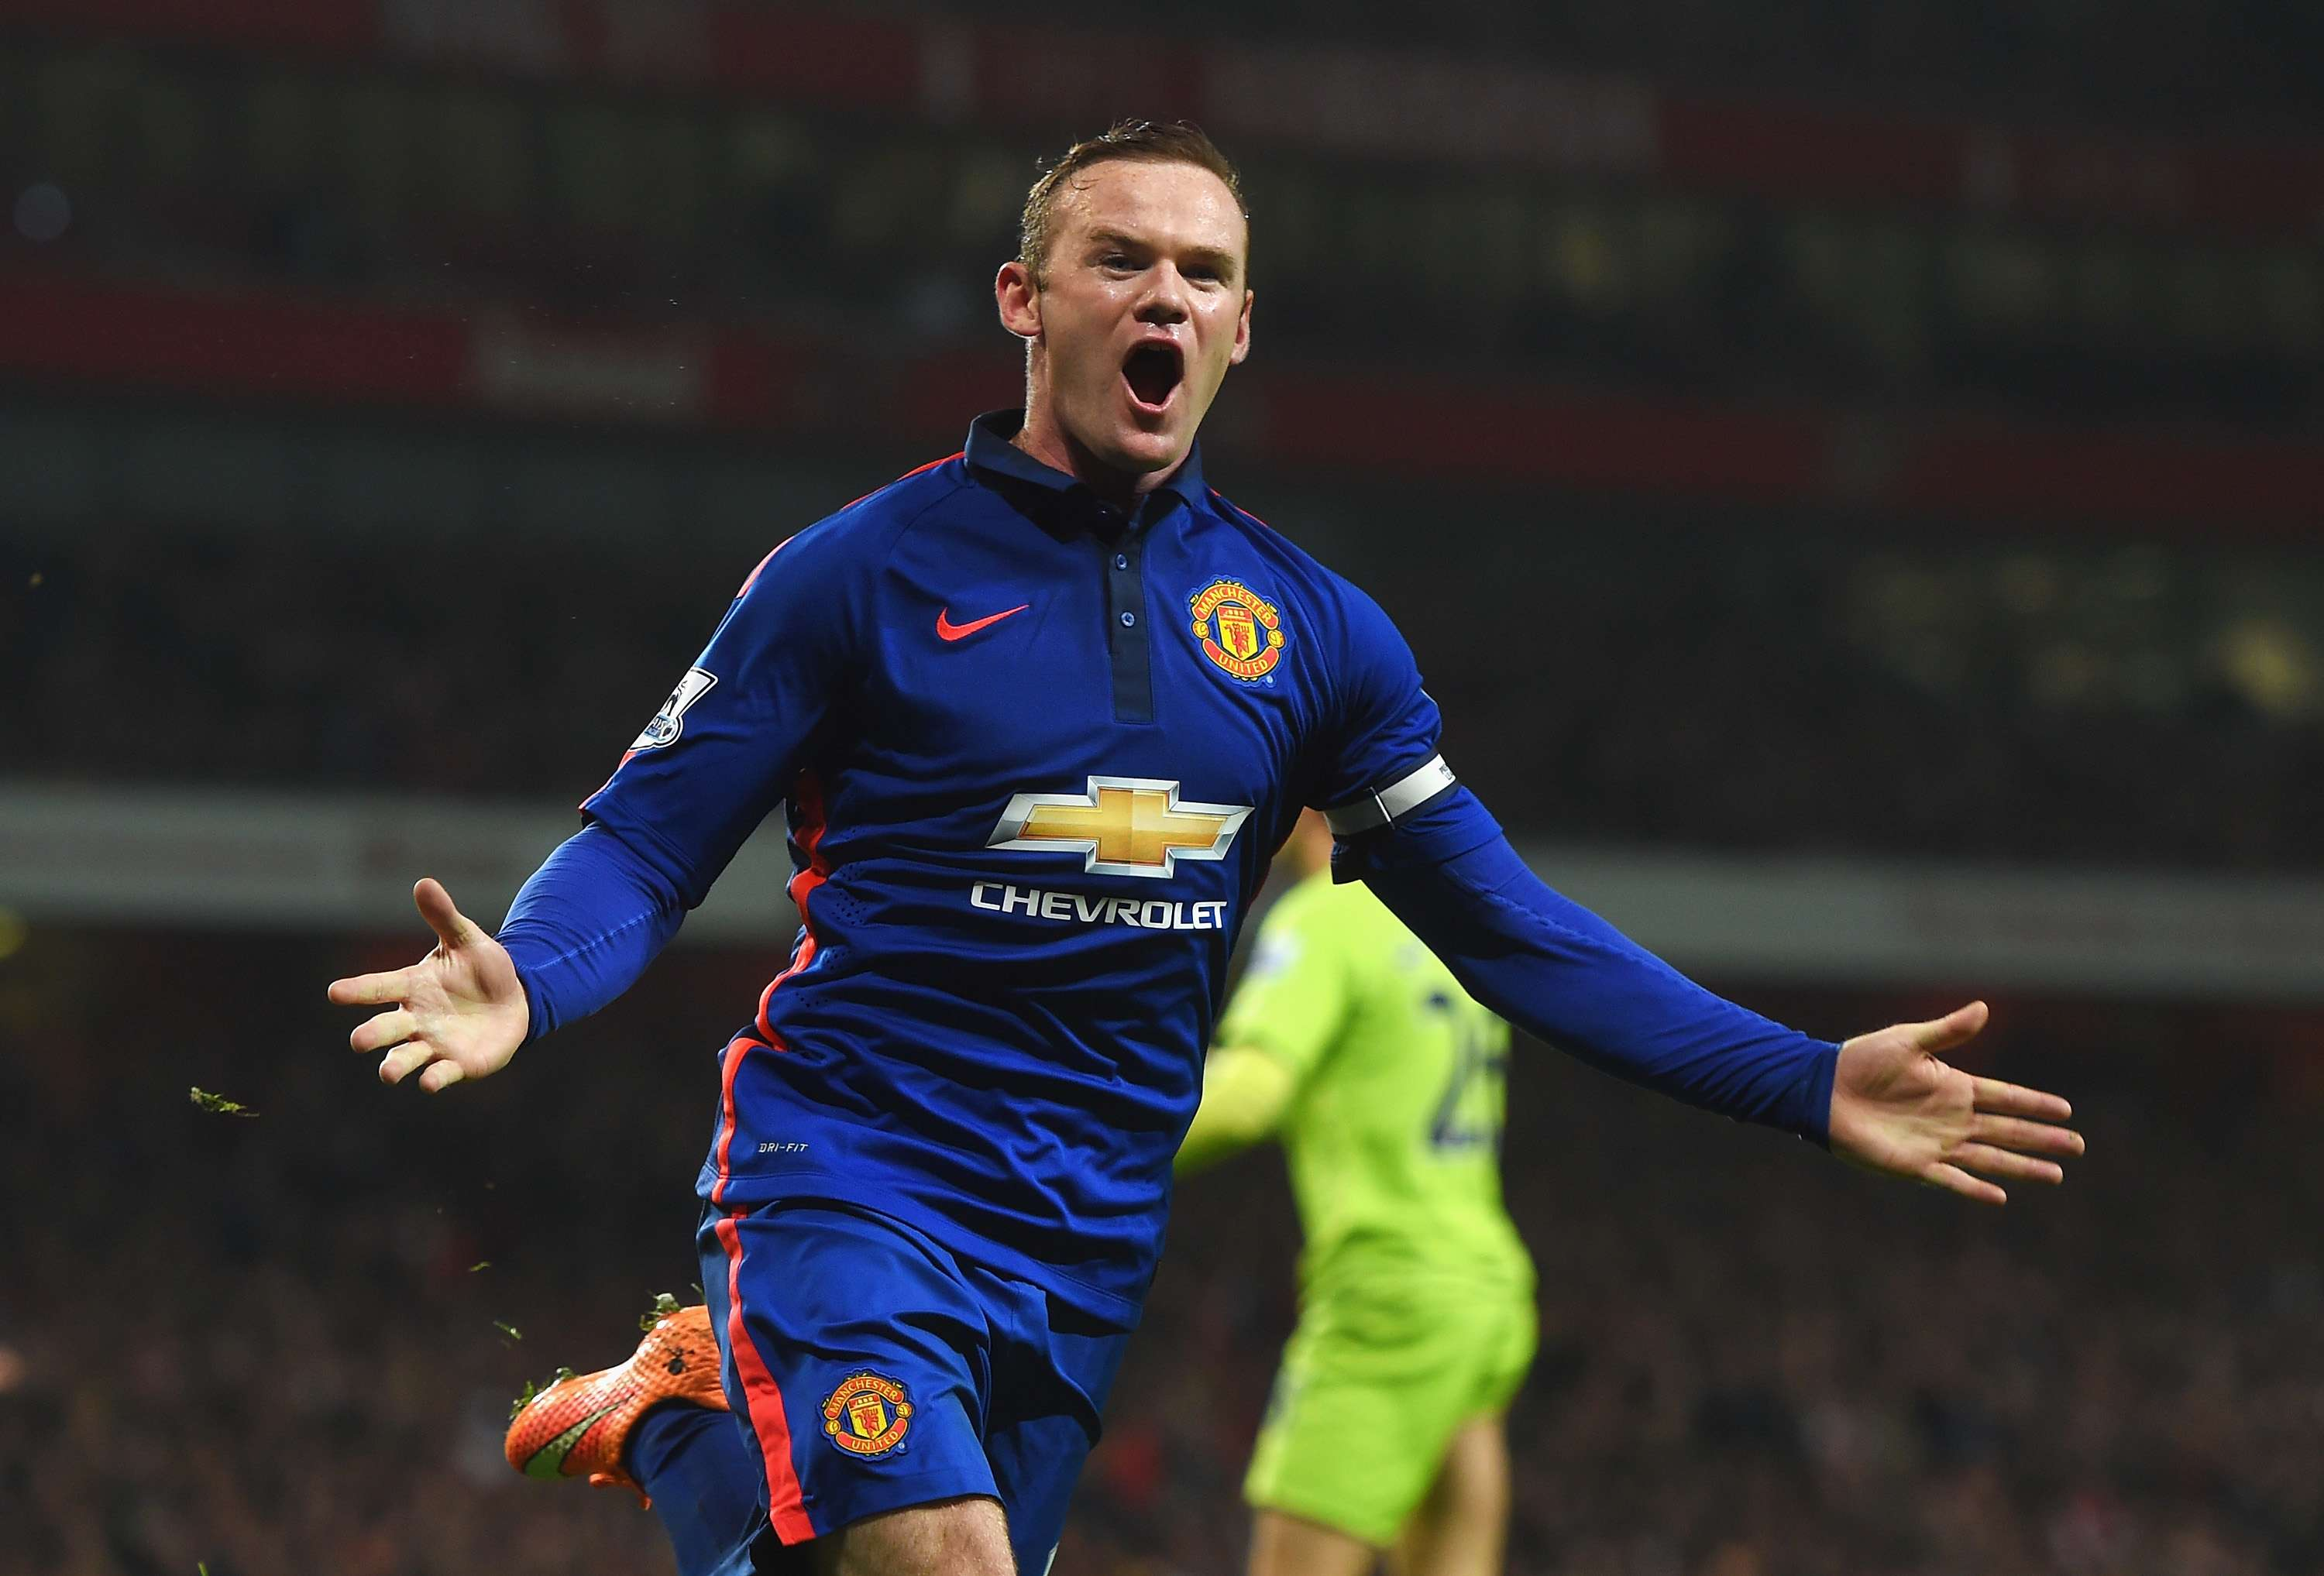 Rooney festejó el gol del triunfo del United. Foto: Getty Images